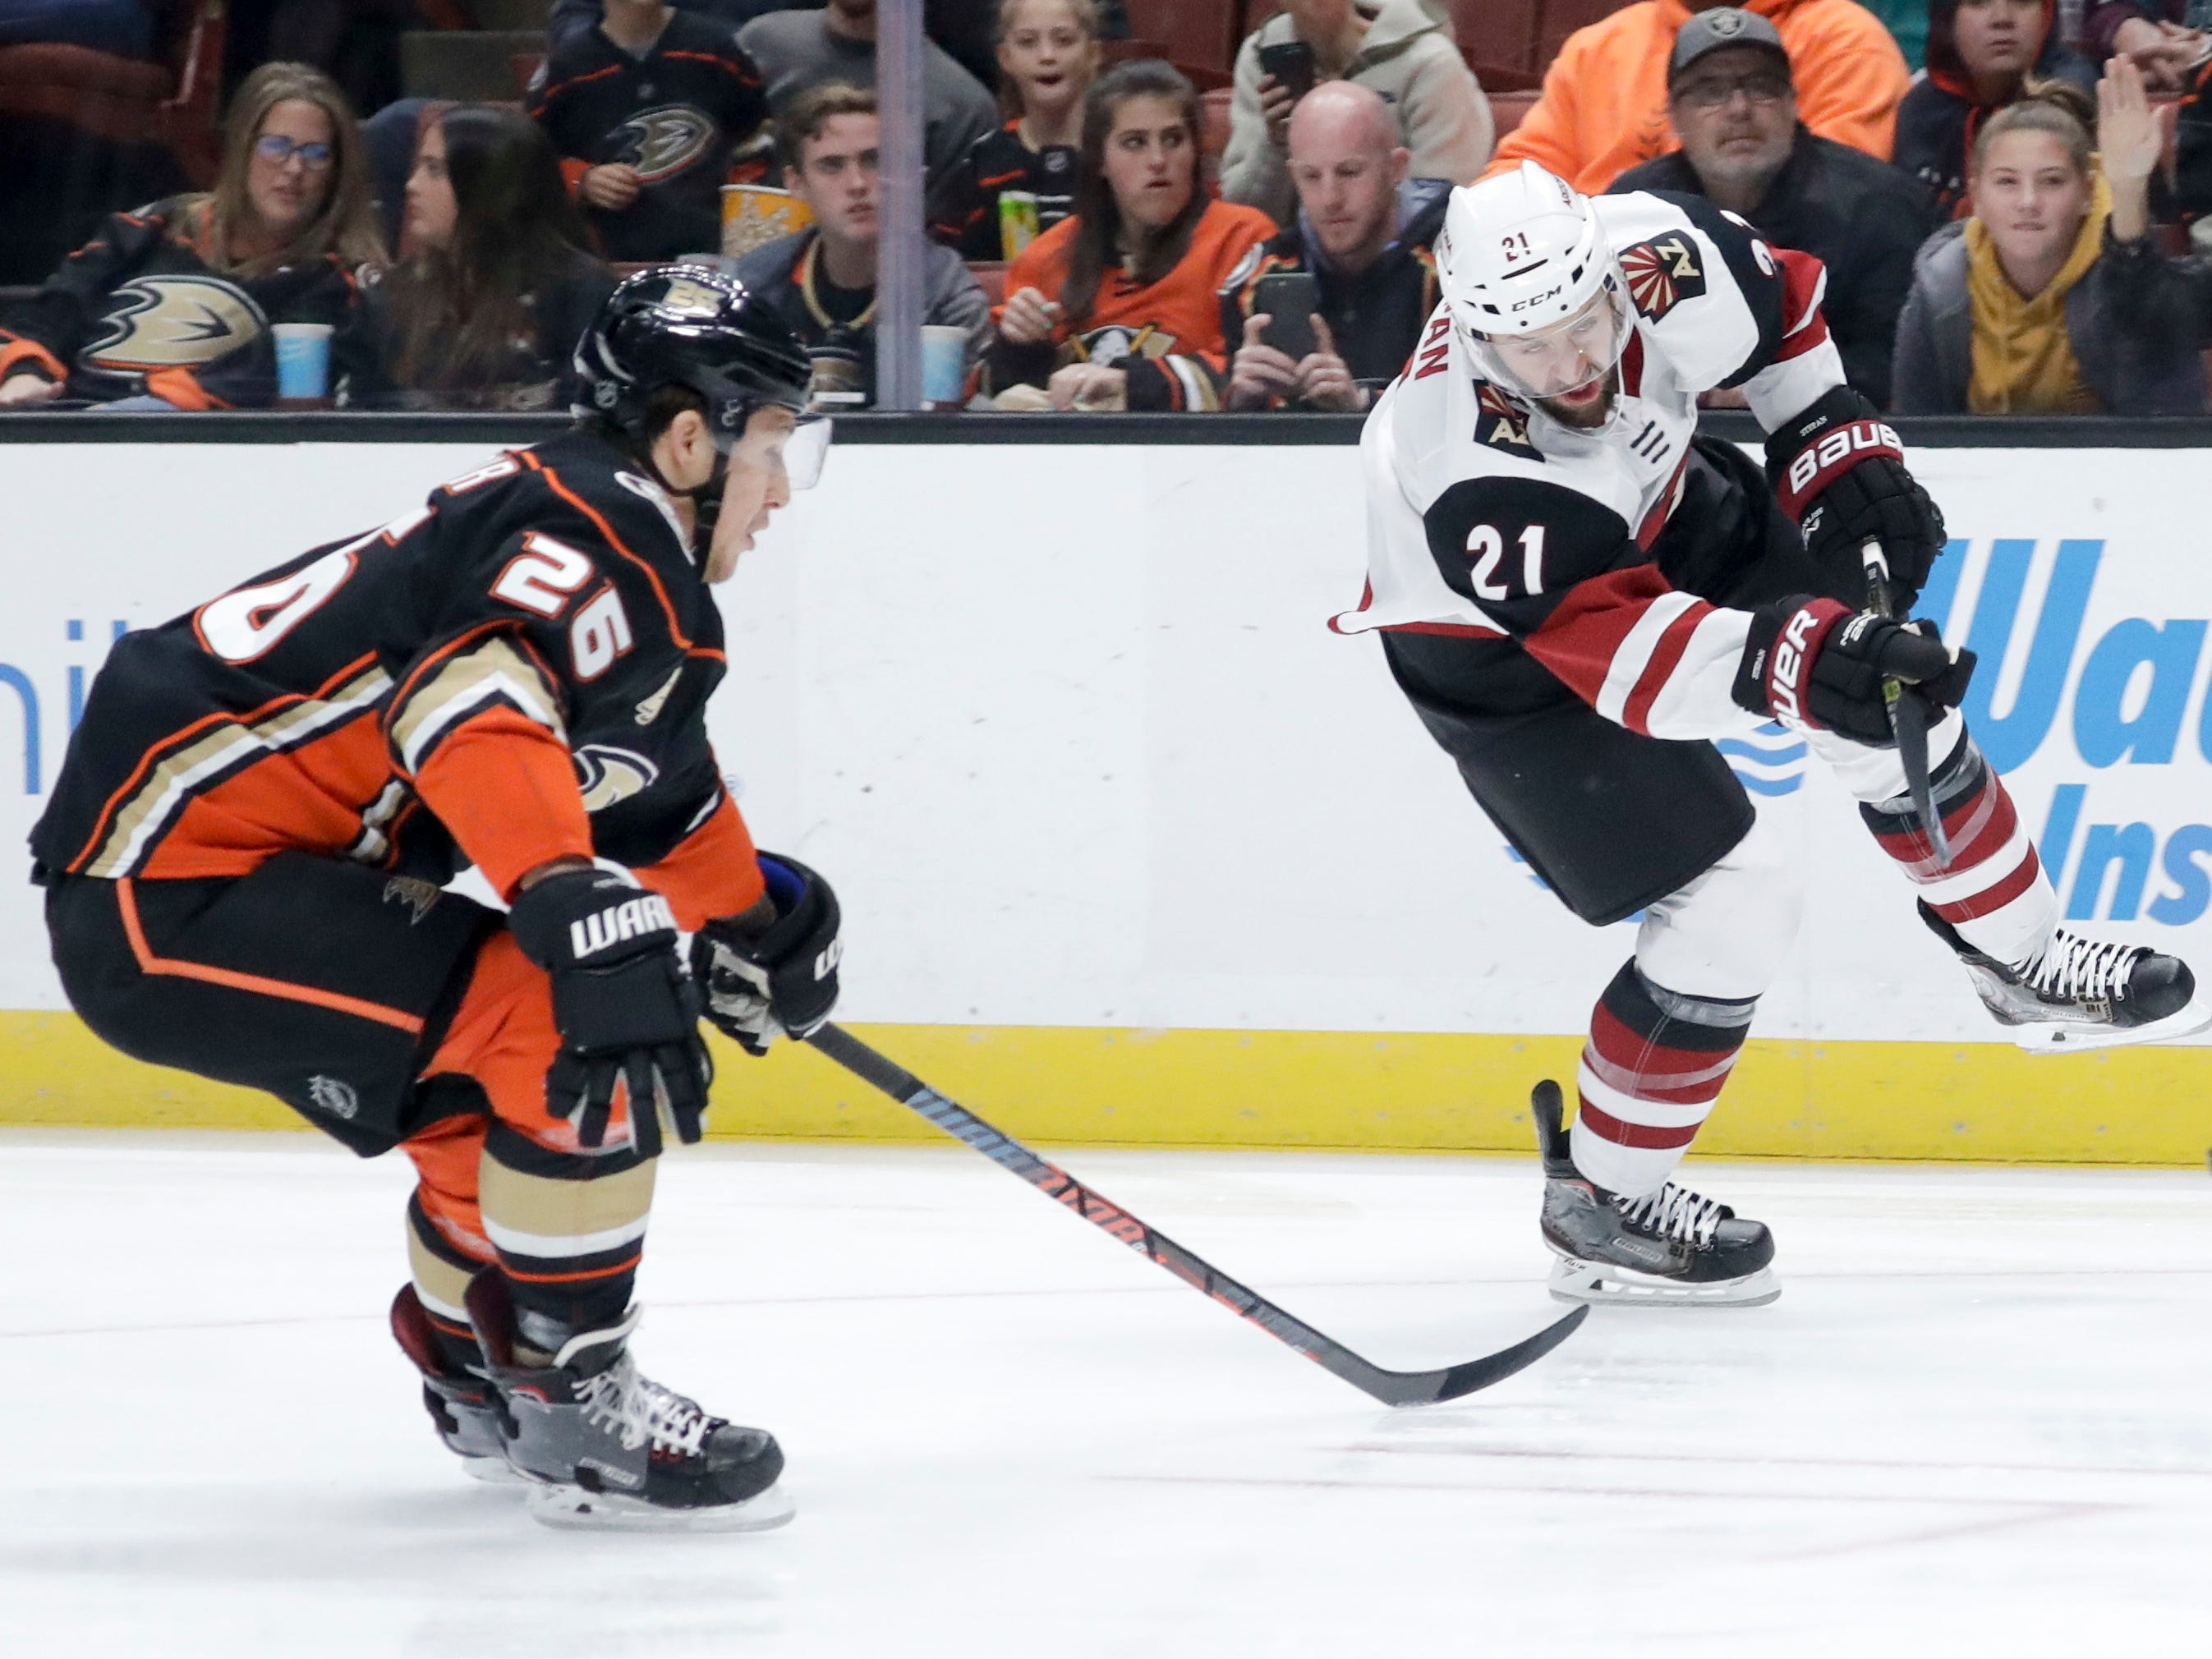 Arizona Coyotes center Derek Stepan, right, shoots past Anaheim Ducks defenseman Brandon Montour during the first period of an NHL hockey game in Anaheim, Calif., Saturday, Dec. 29, 2018. (AP Photo/Chris Carlson)